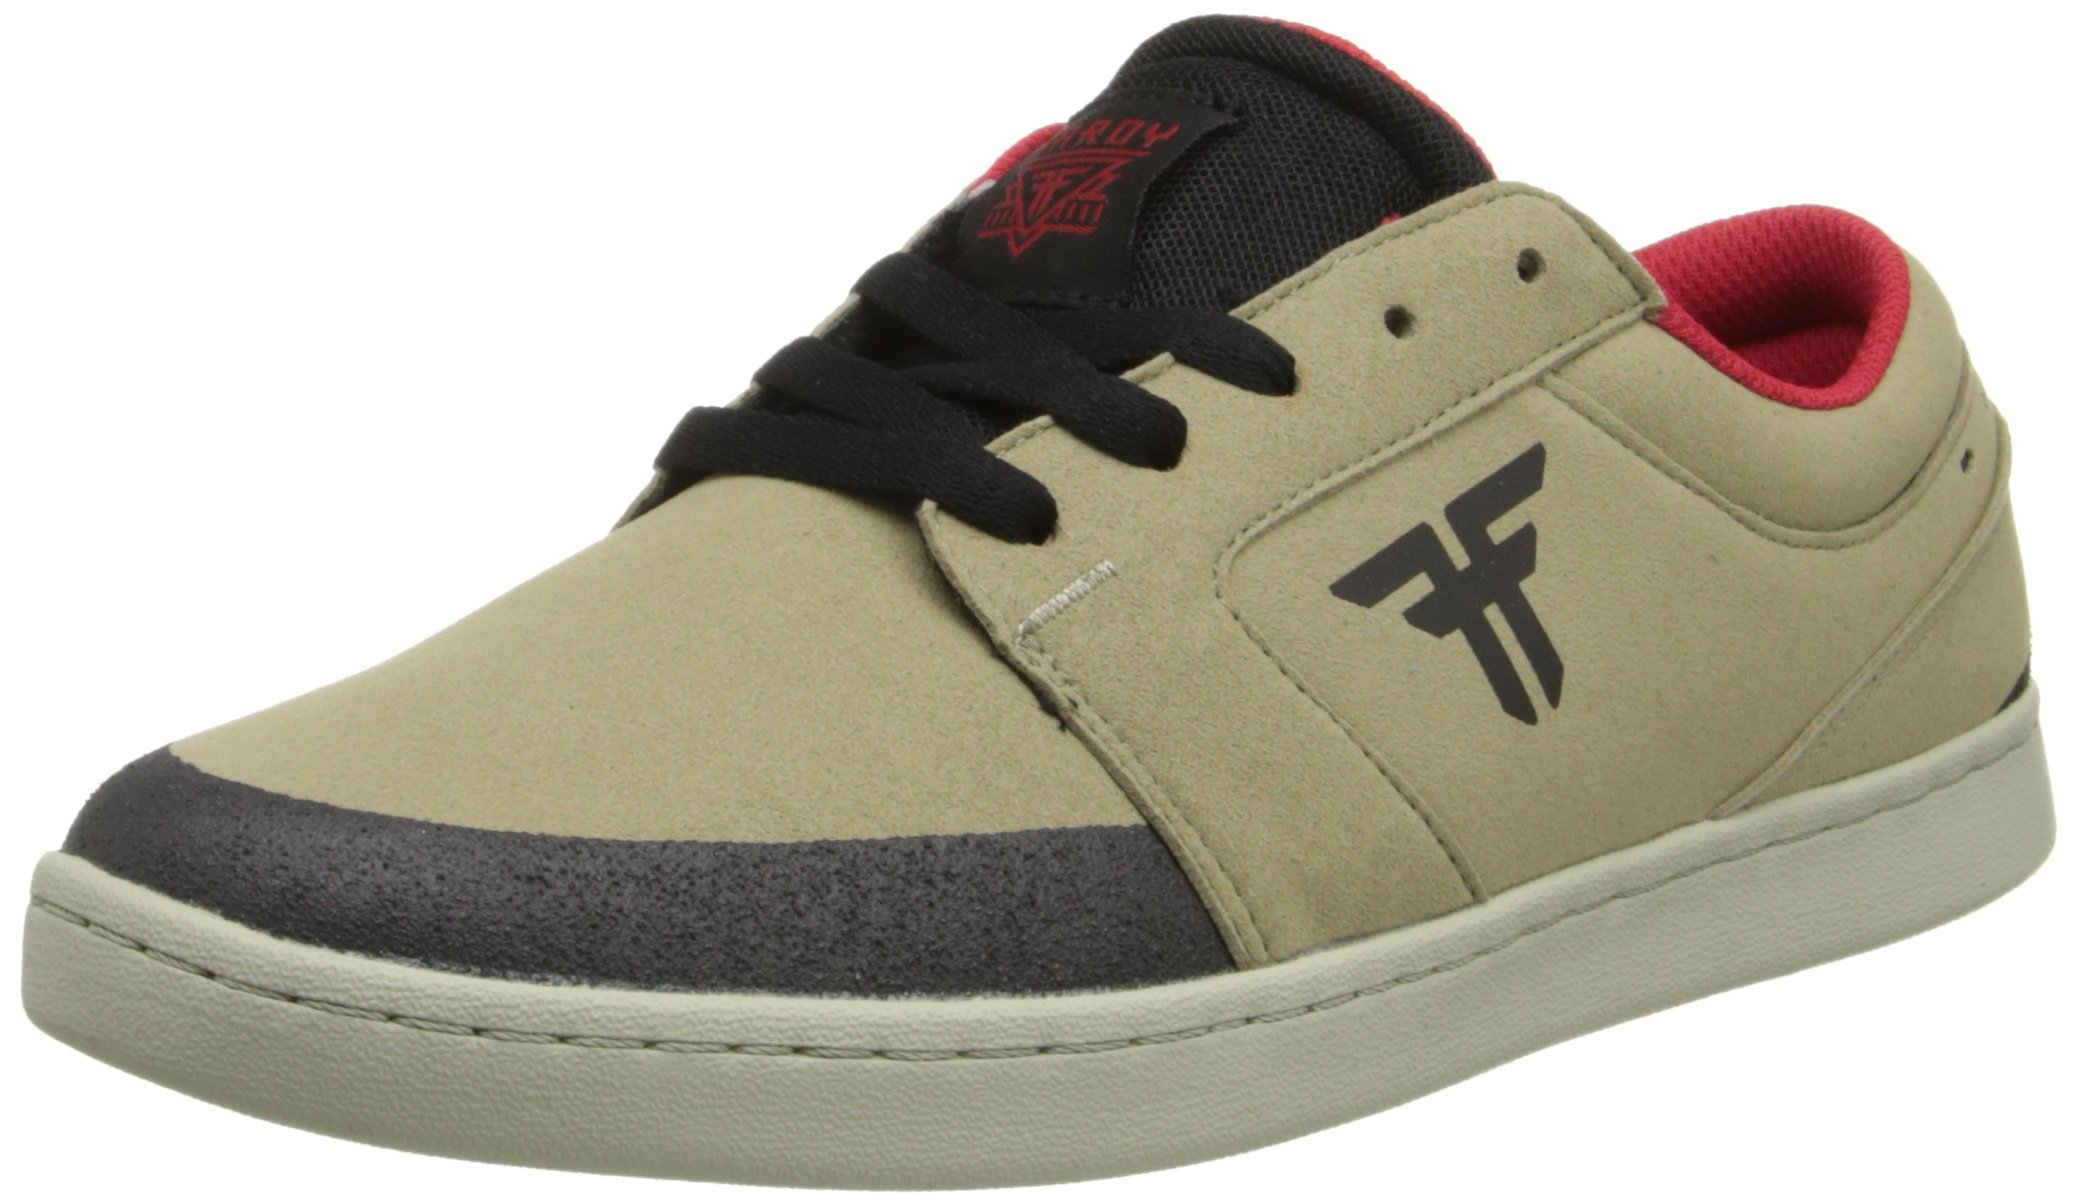 Fallen Torch Skate Shoe,Khaki/Black,7 M US by Fallen